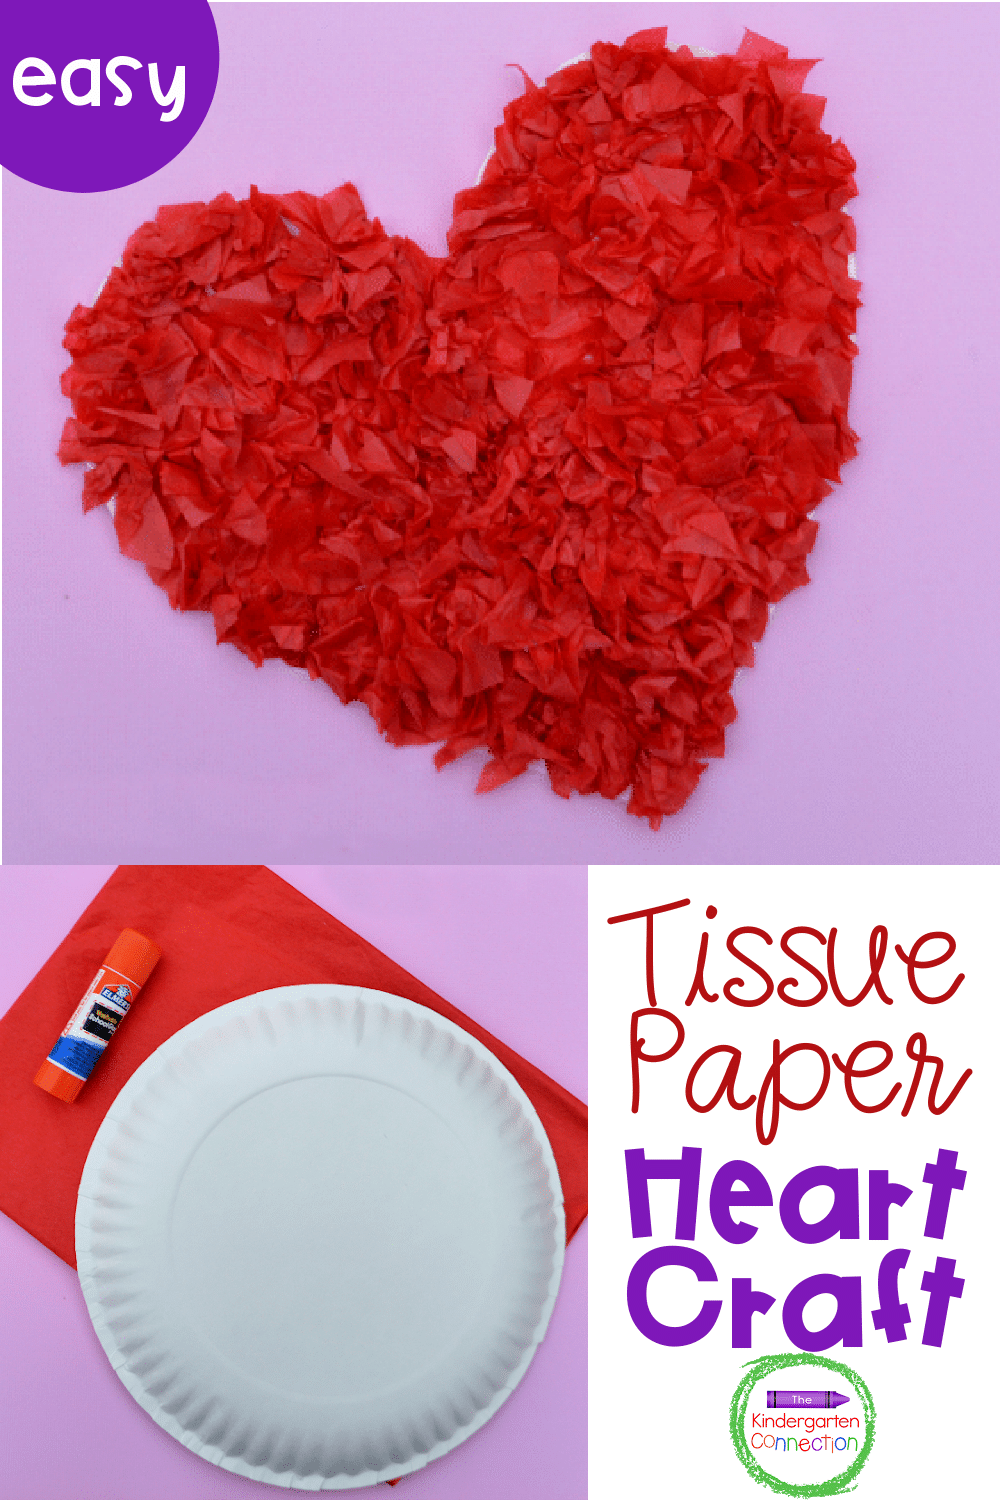 Prepare for Valentine's Day while strengthening fine motor skills too with this fun and easy tissue paper Valentine heart craft for kids!